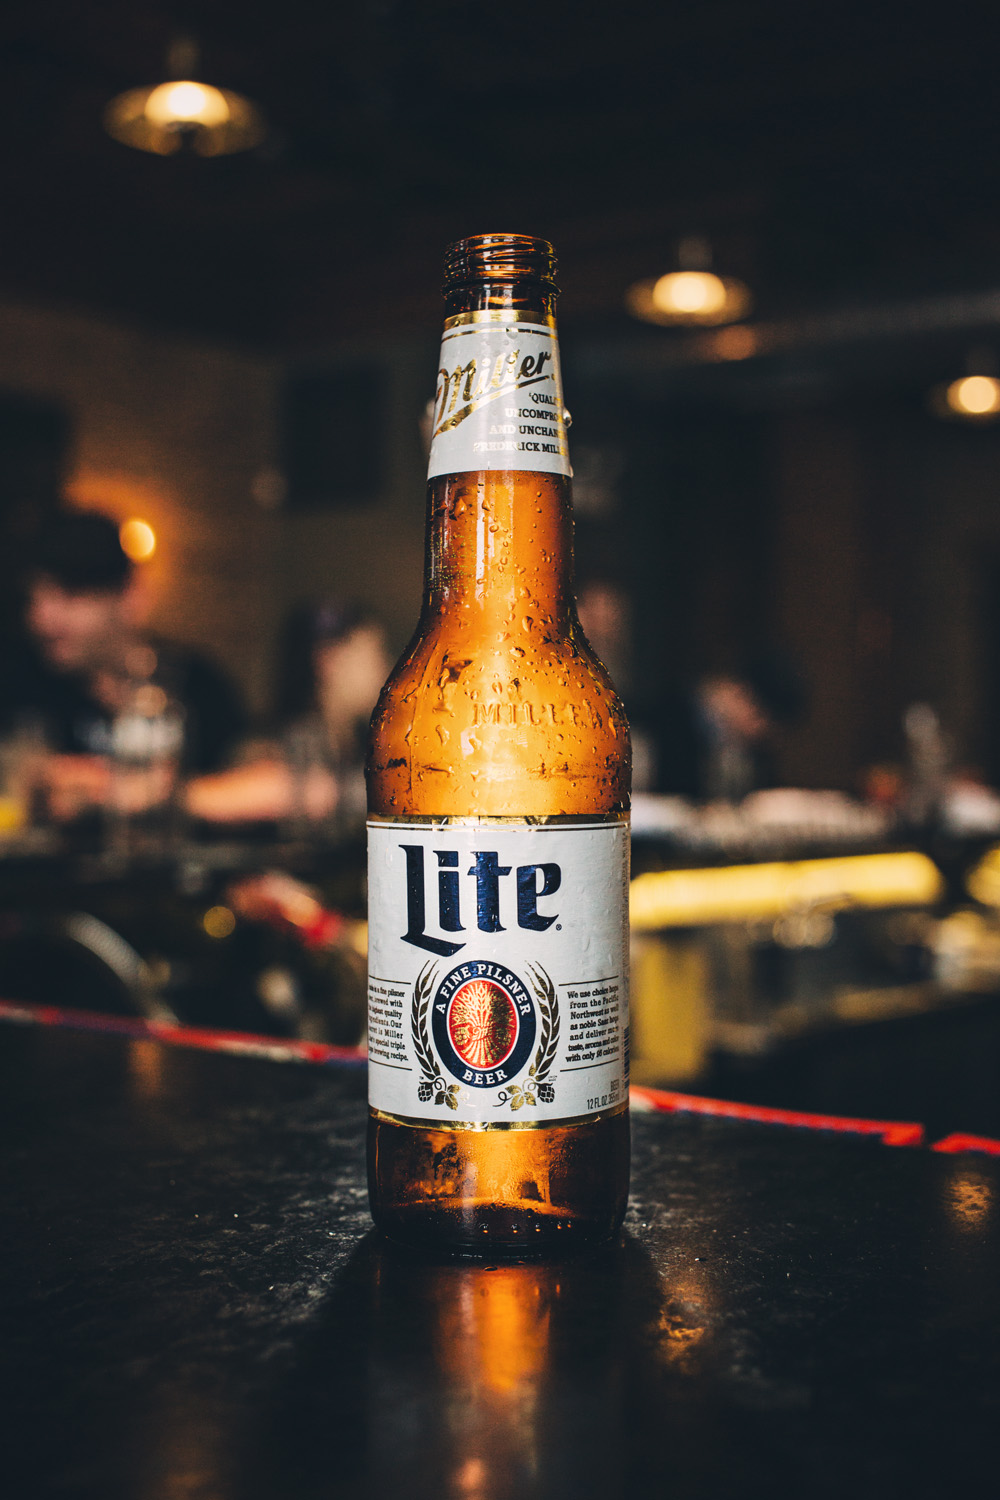 CommercialMillerLite_BarBottle_0095.jpg